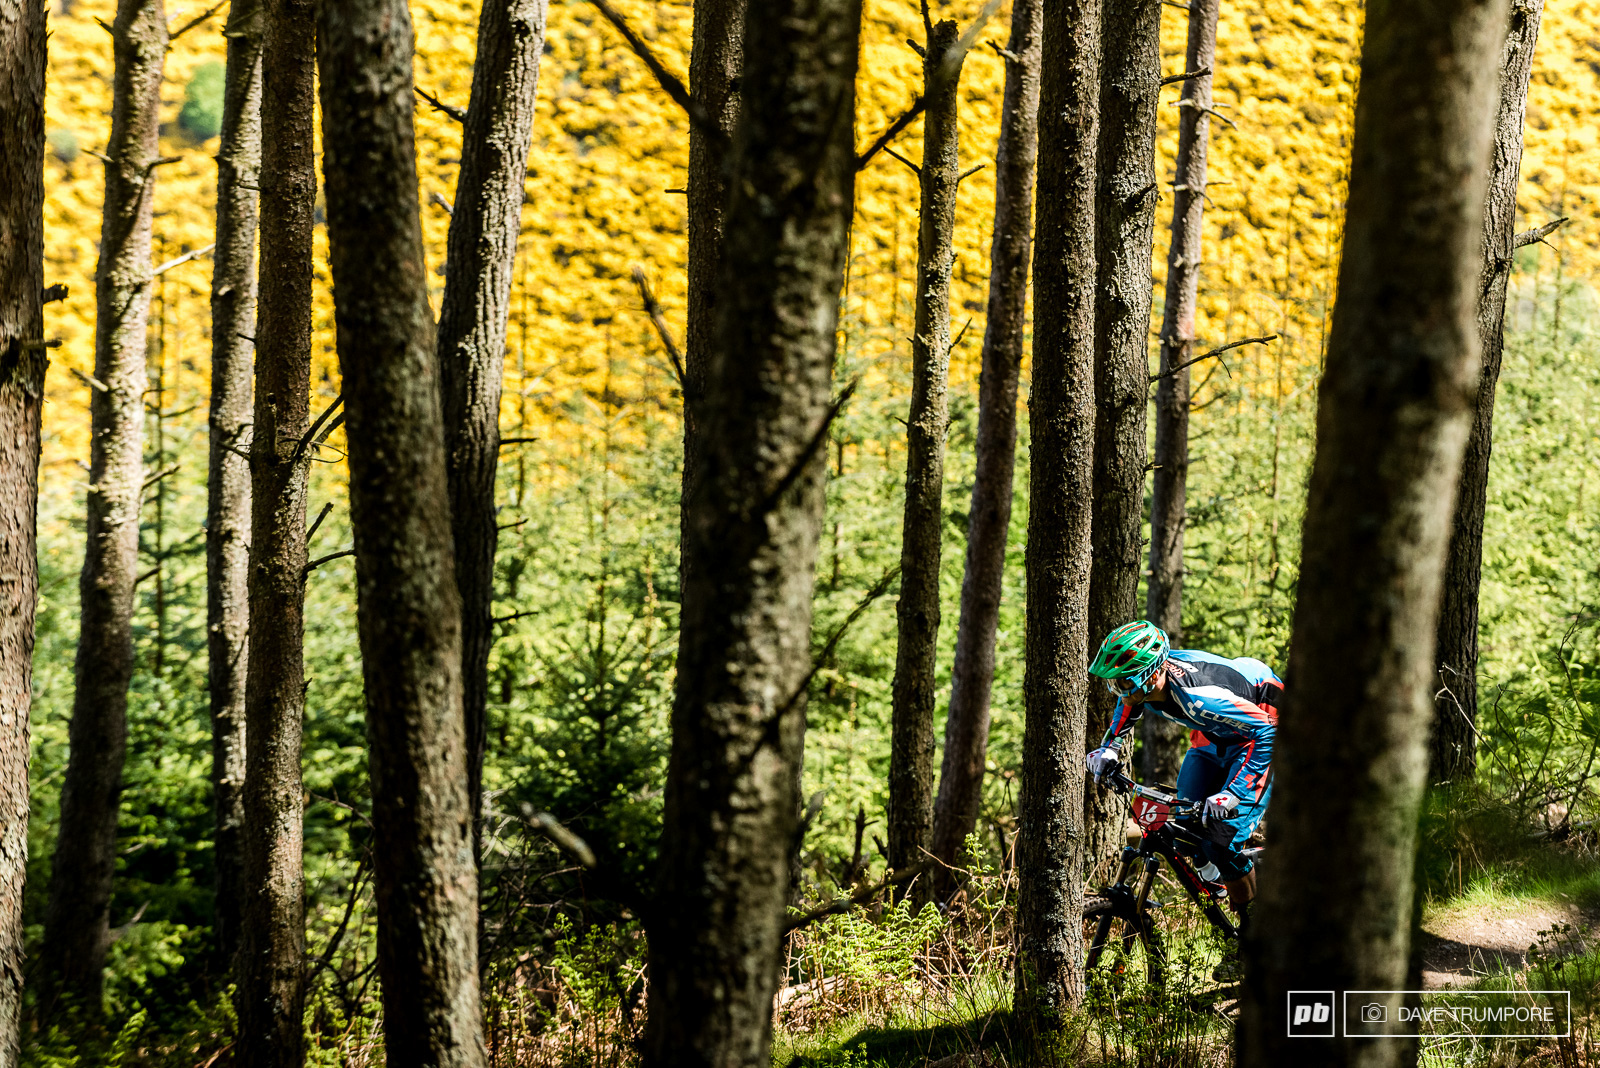 Greg Callaghan weaving through the tight trees on stage one